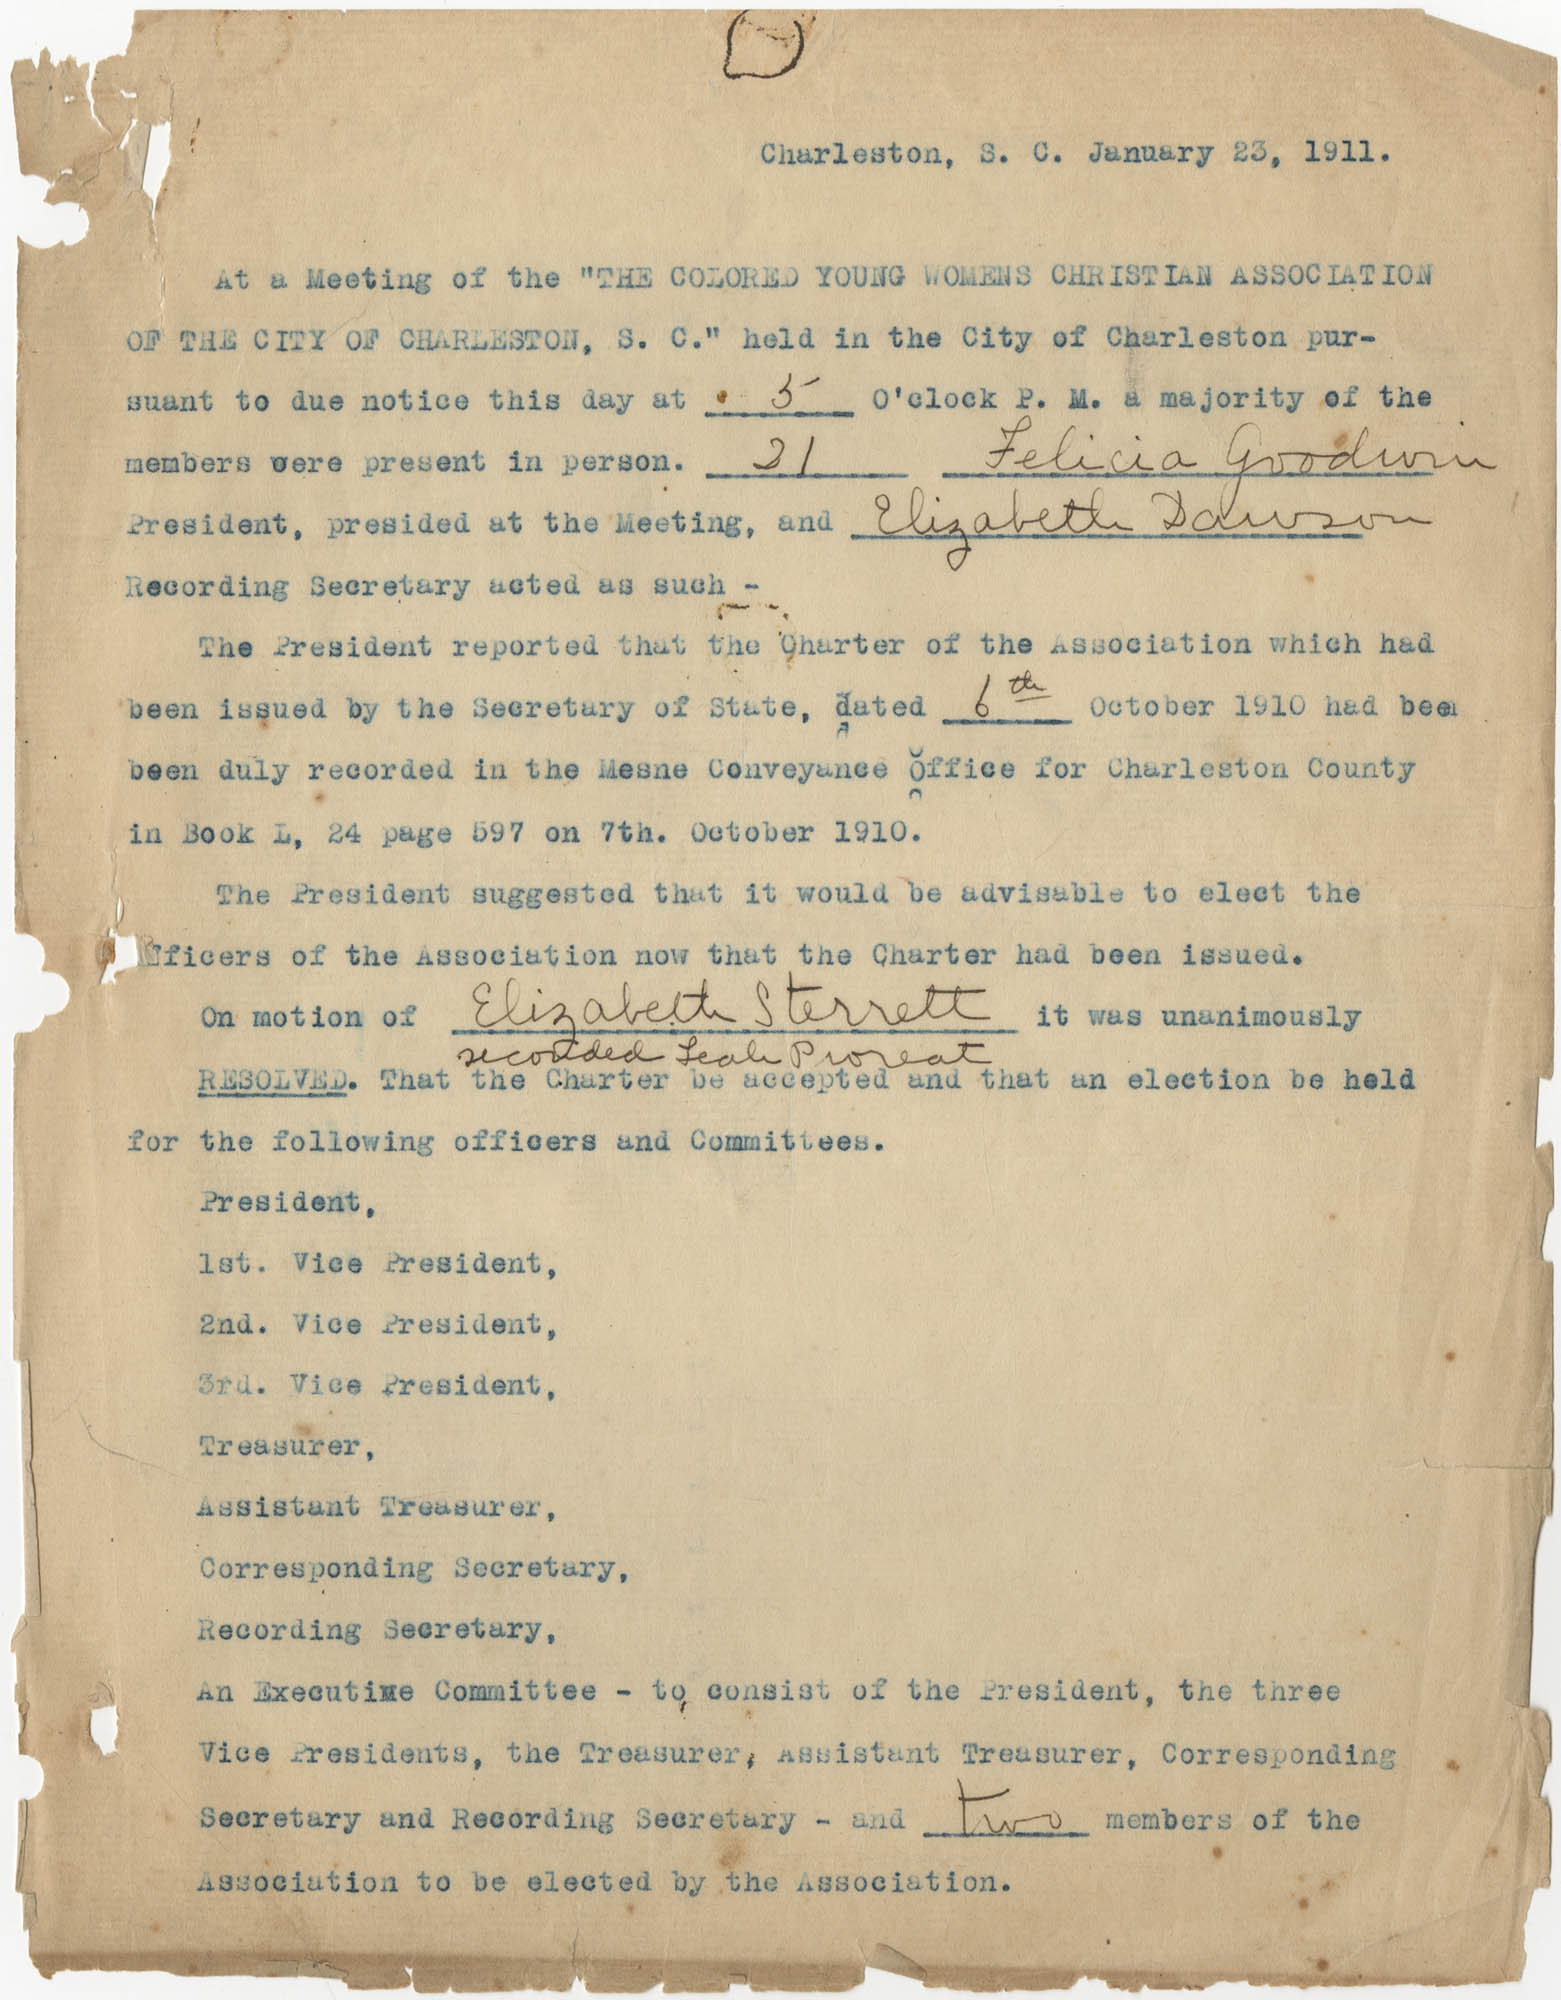 Minutes to the Coming Street Y.W.C.A. Meeting, January 23, 1911, Page 1